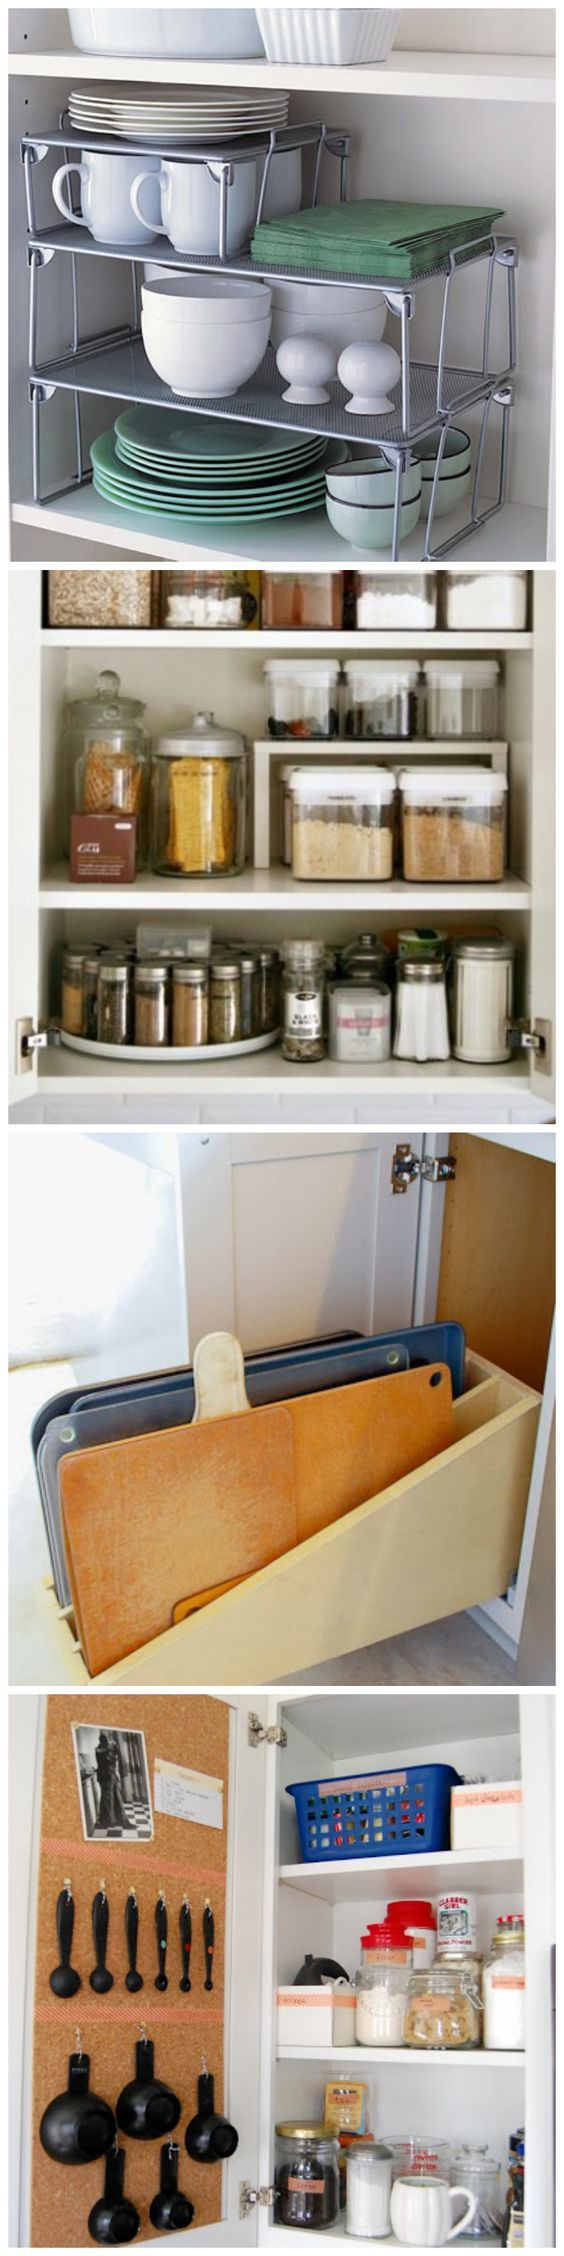 Elegant Rubbermaid Kitchen Cabinet organizers